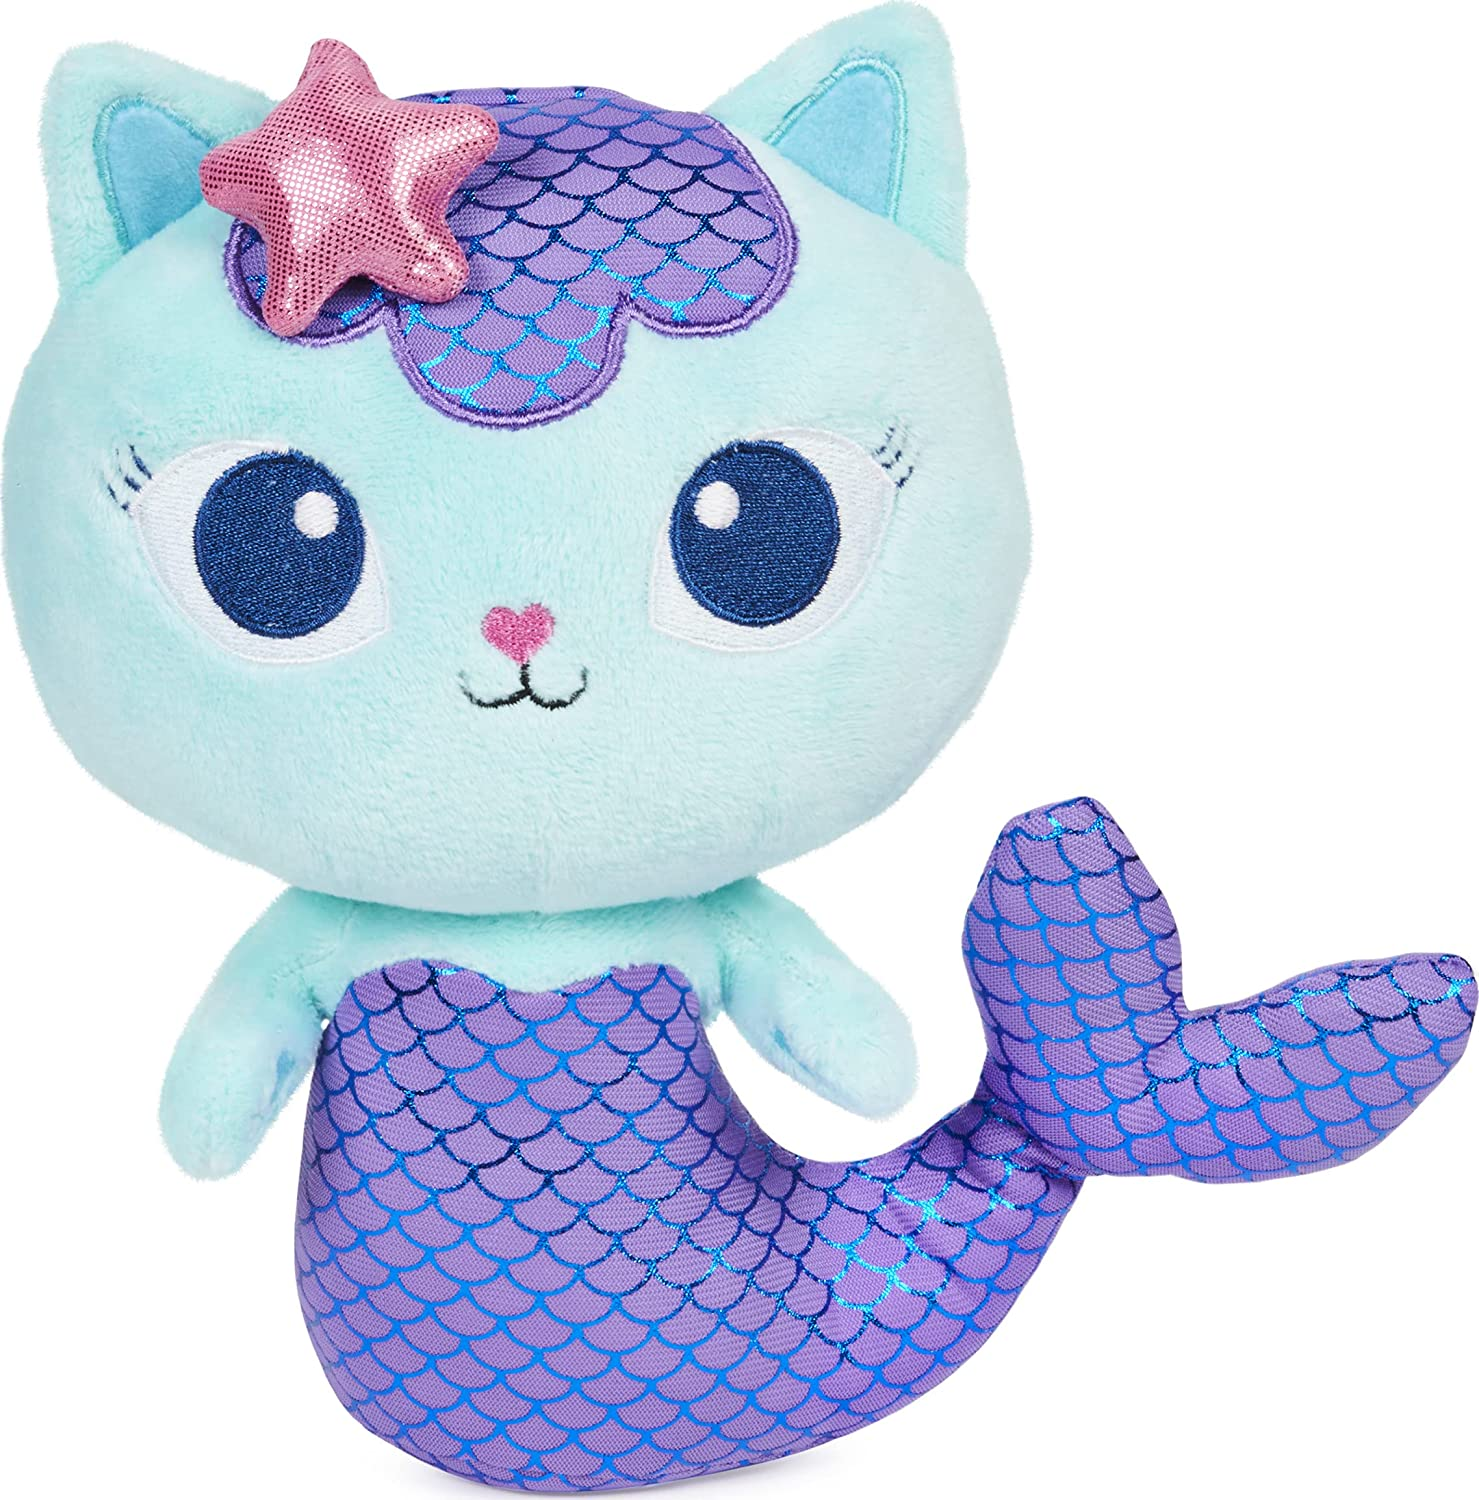 Gabby's safety Dollhouse 8-inch MerCat Toy Purr-ific 2021new shipping free Kids Plush